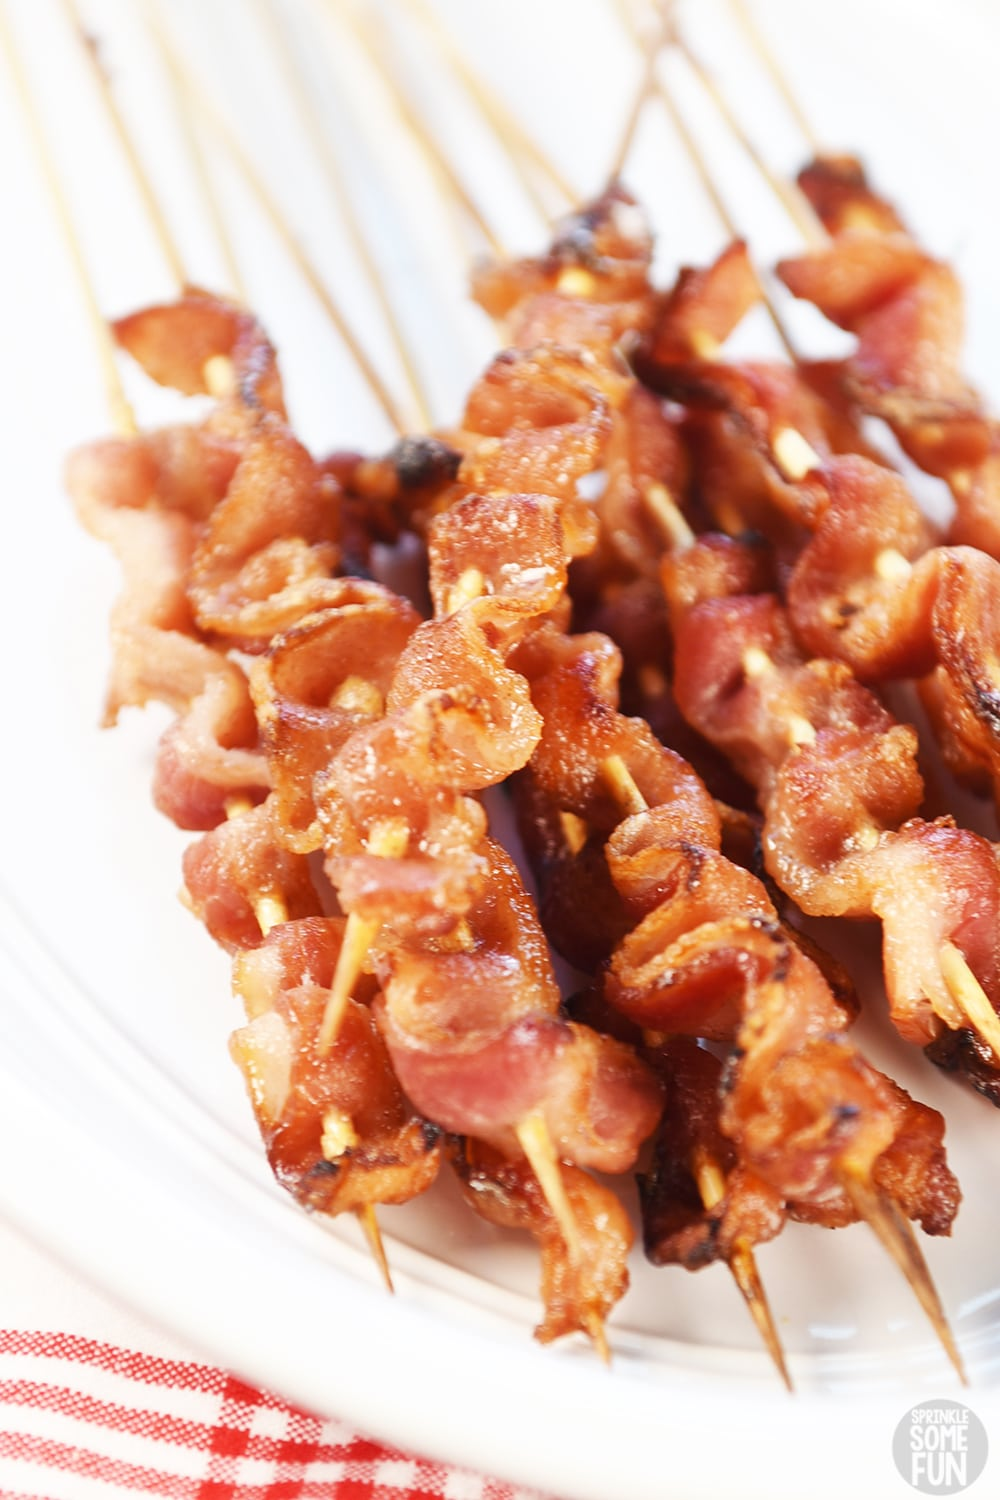 Bacon on Skewers